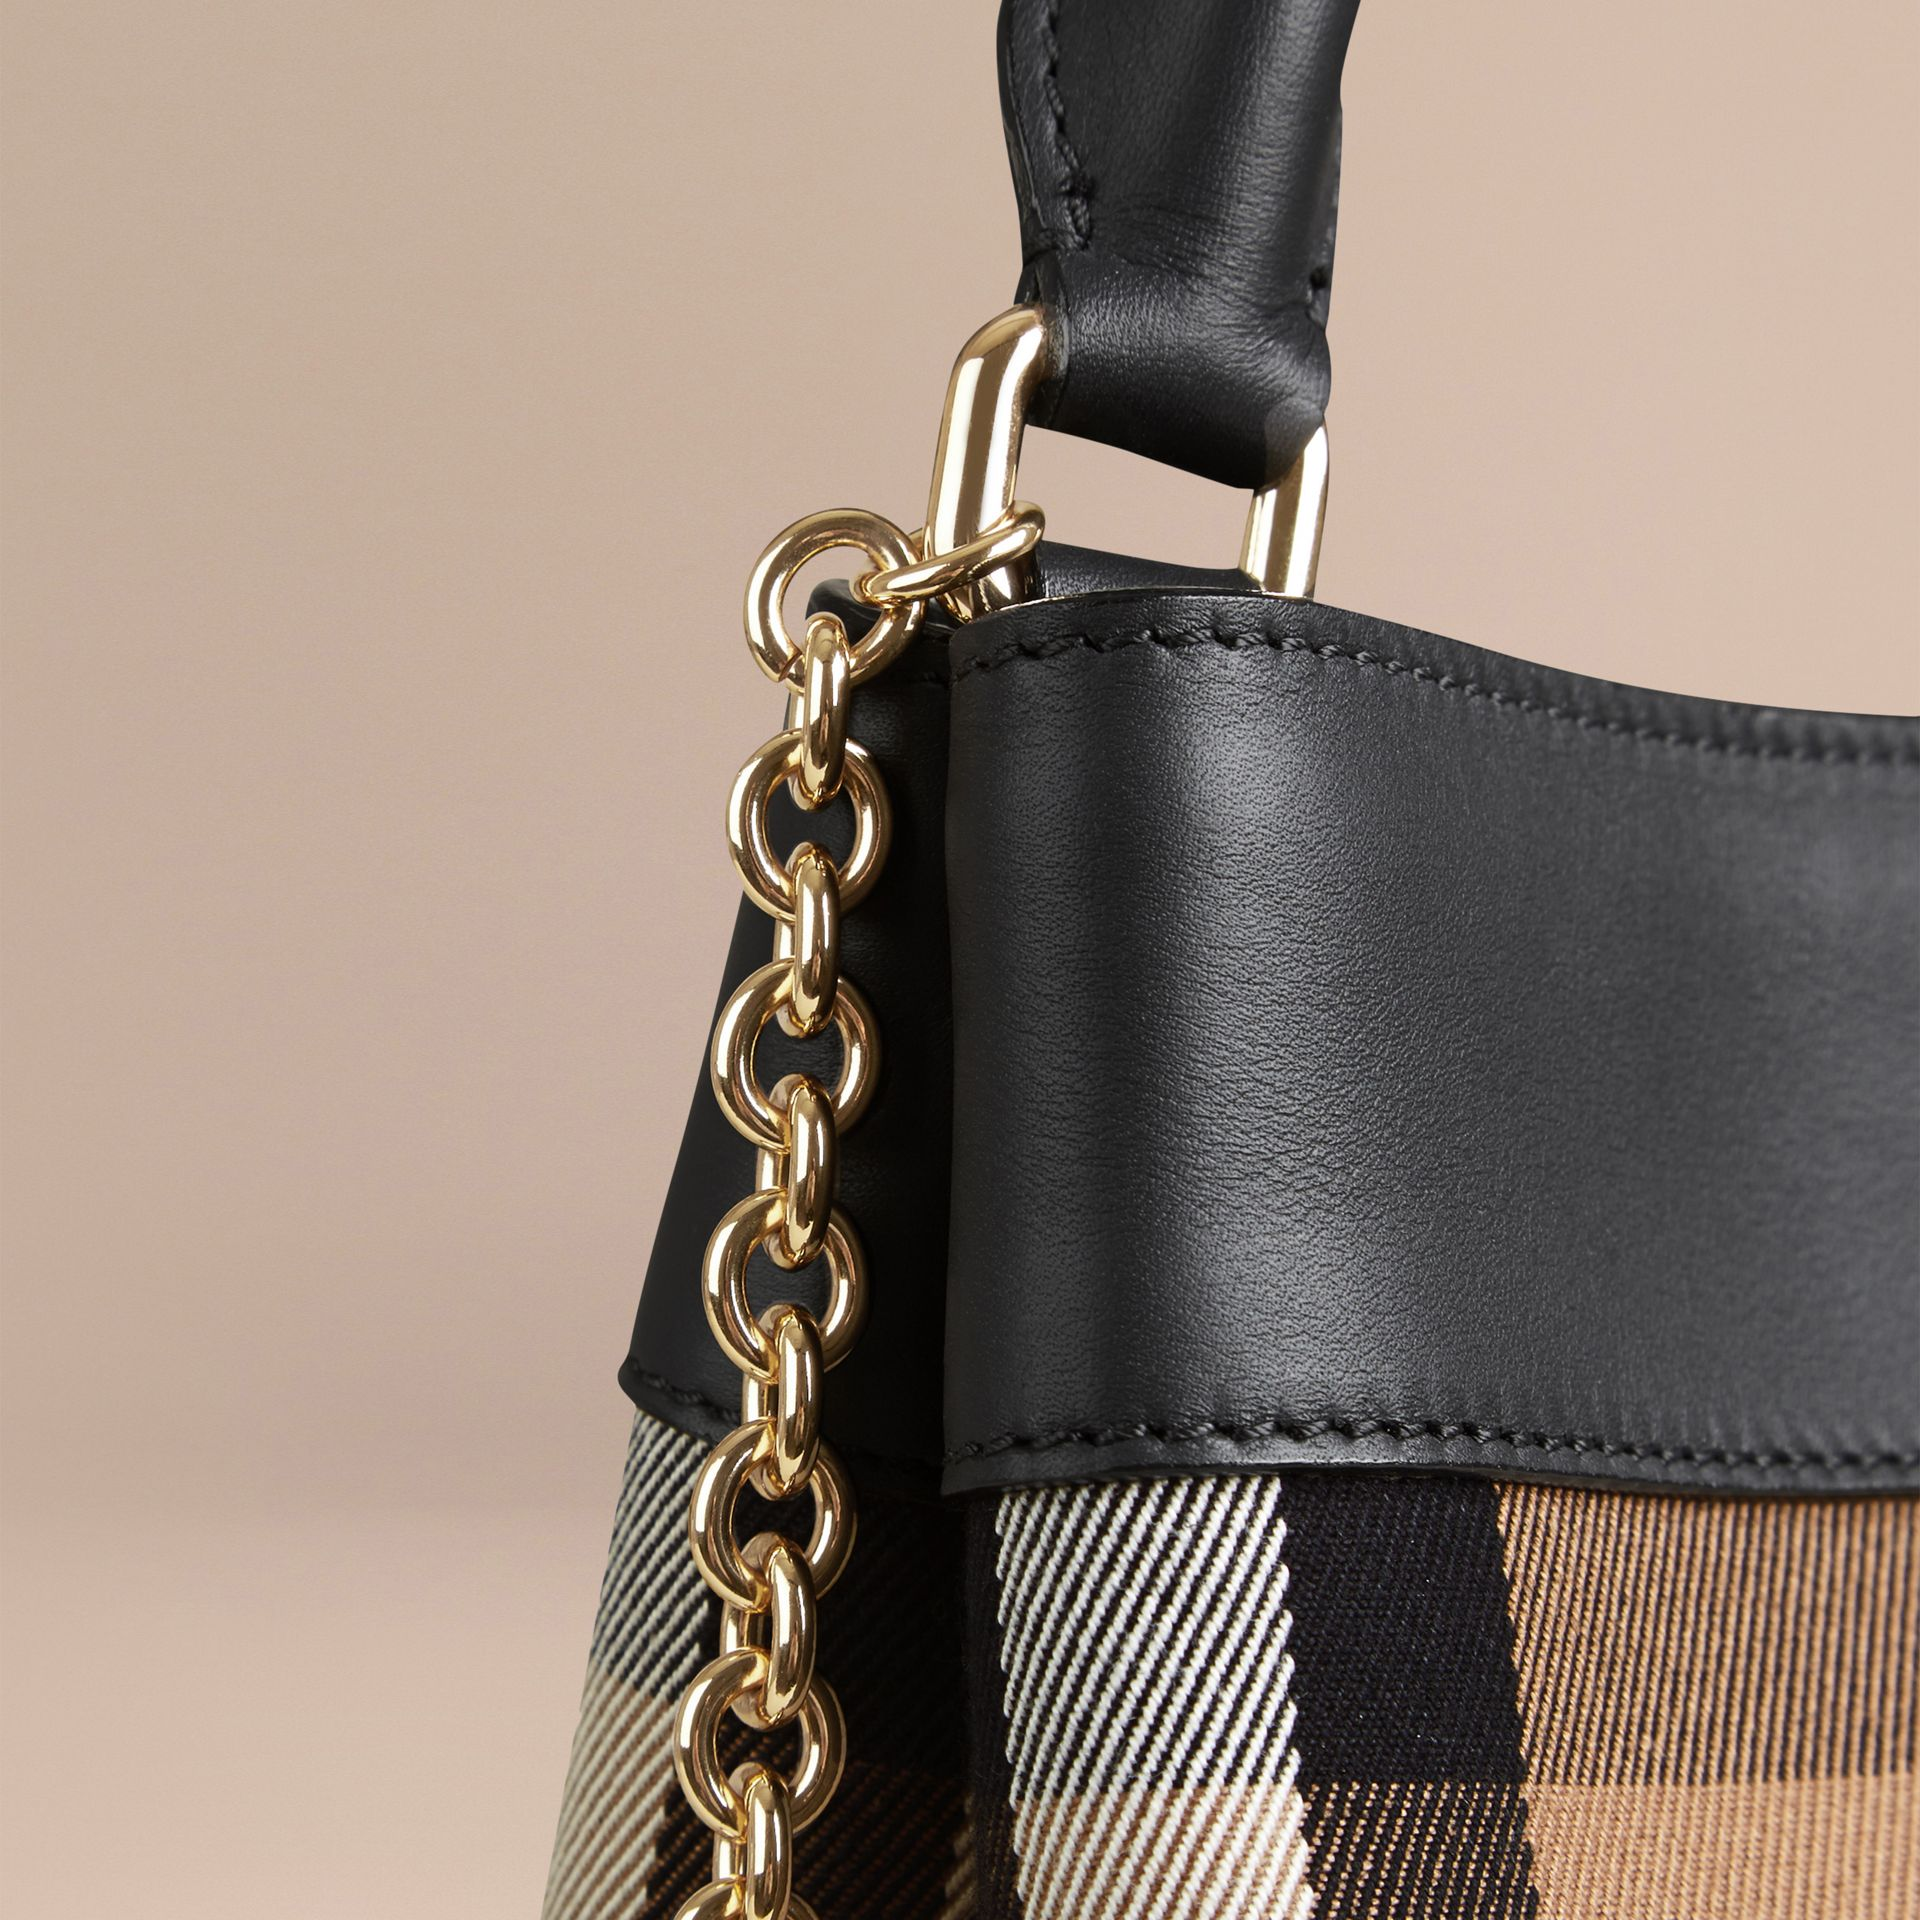 Noir Petit sac Burberry Bucket en coton House check et cuir - photo de la galerie 6